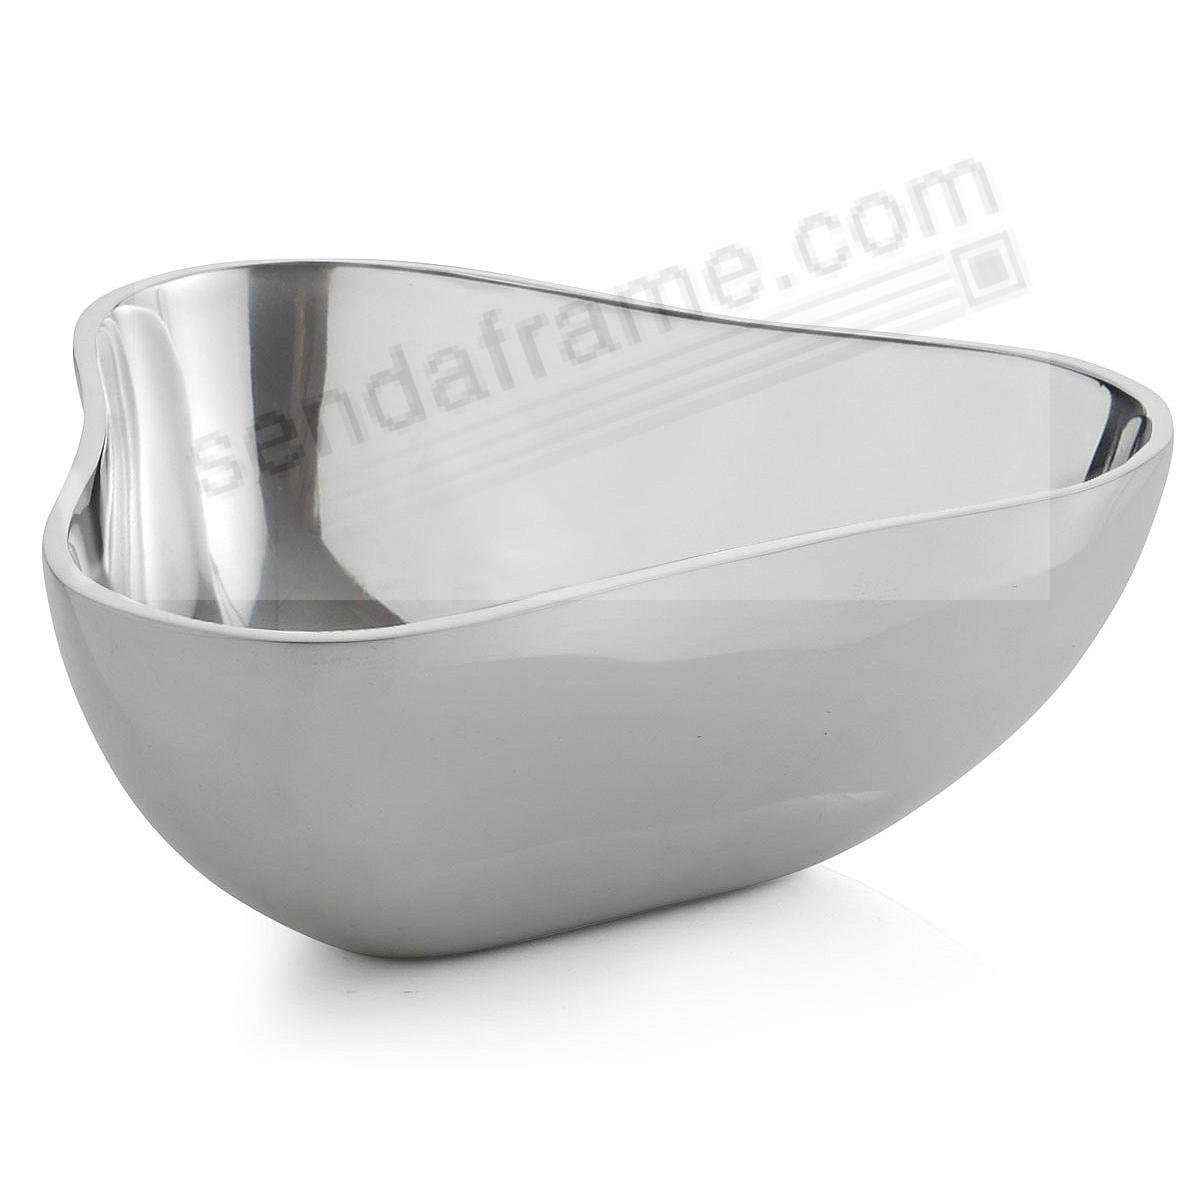 The Original SIXTYFIVE TRI BOWL (35oz-Medium) by Nambe®